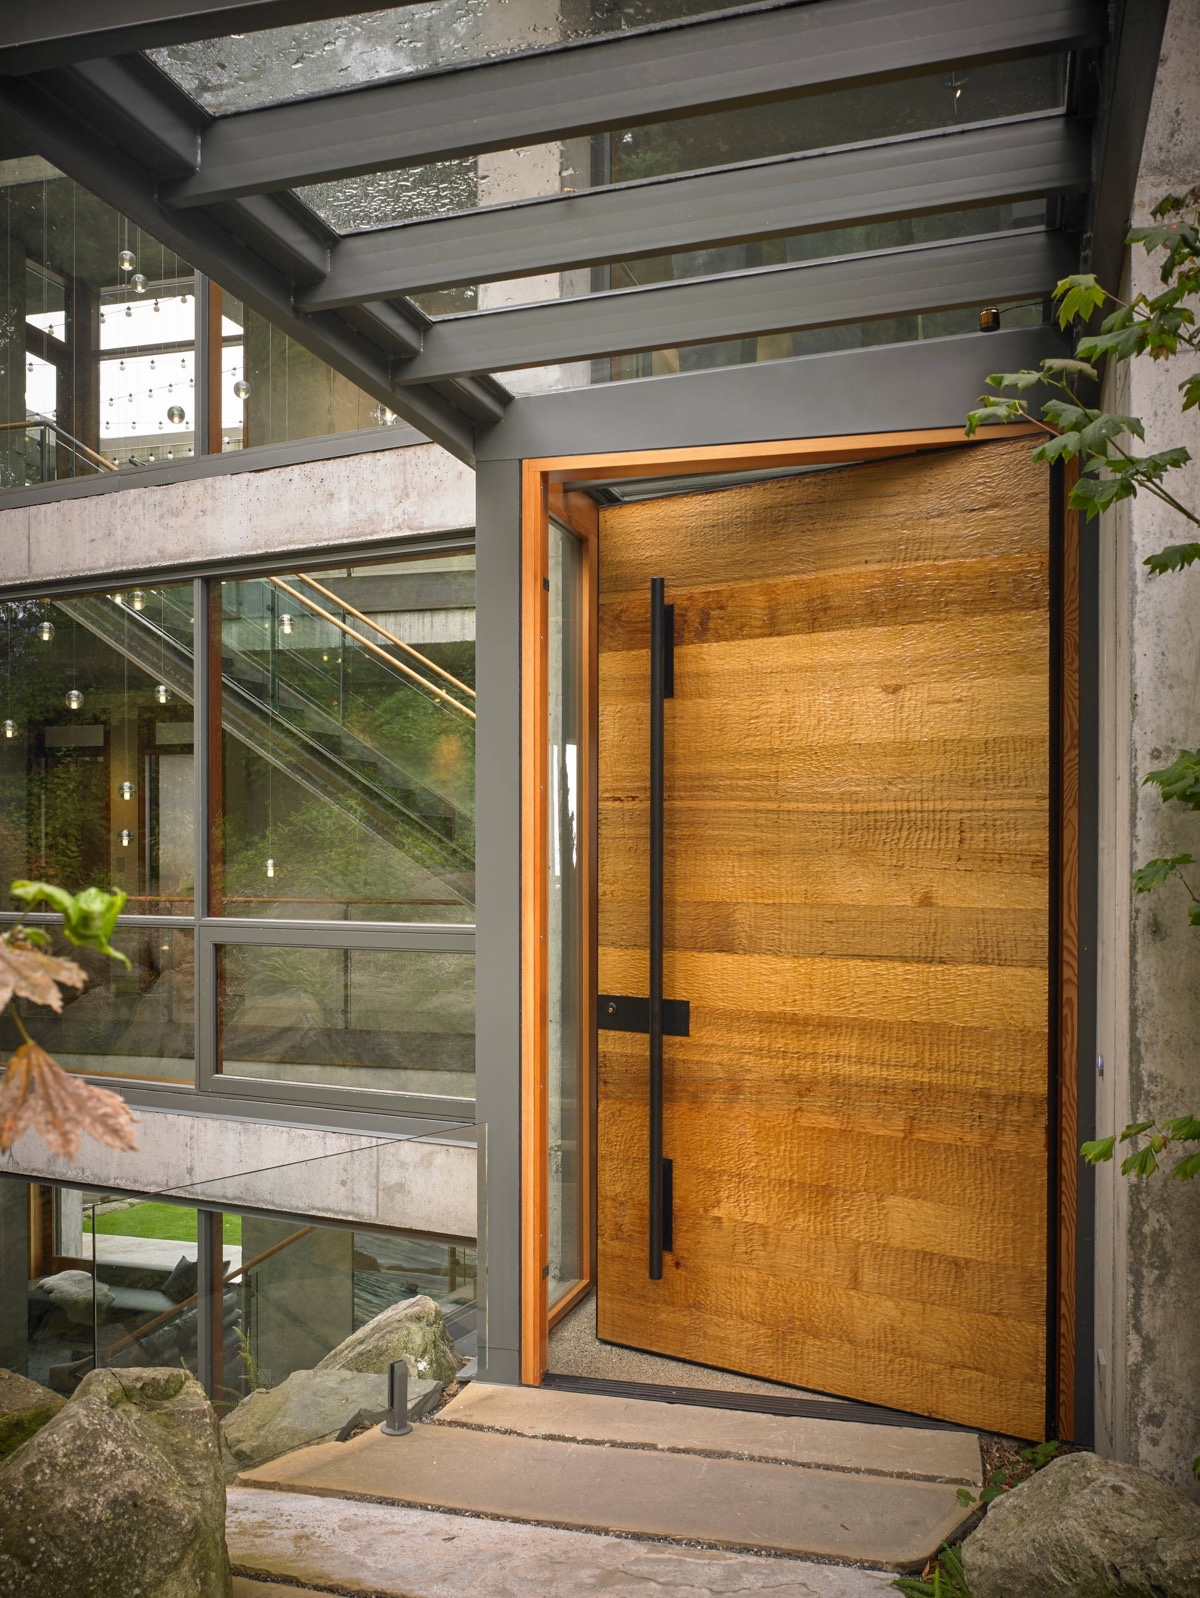 50 modern front door designs - Modern Glass Exterior Doors